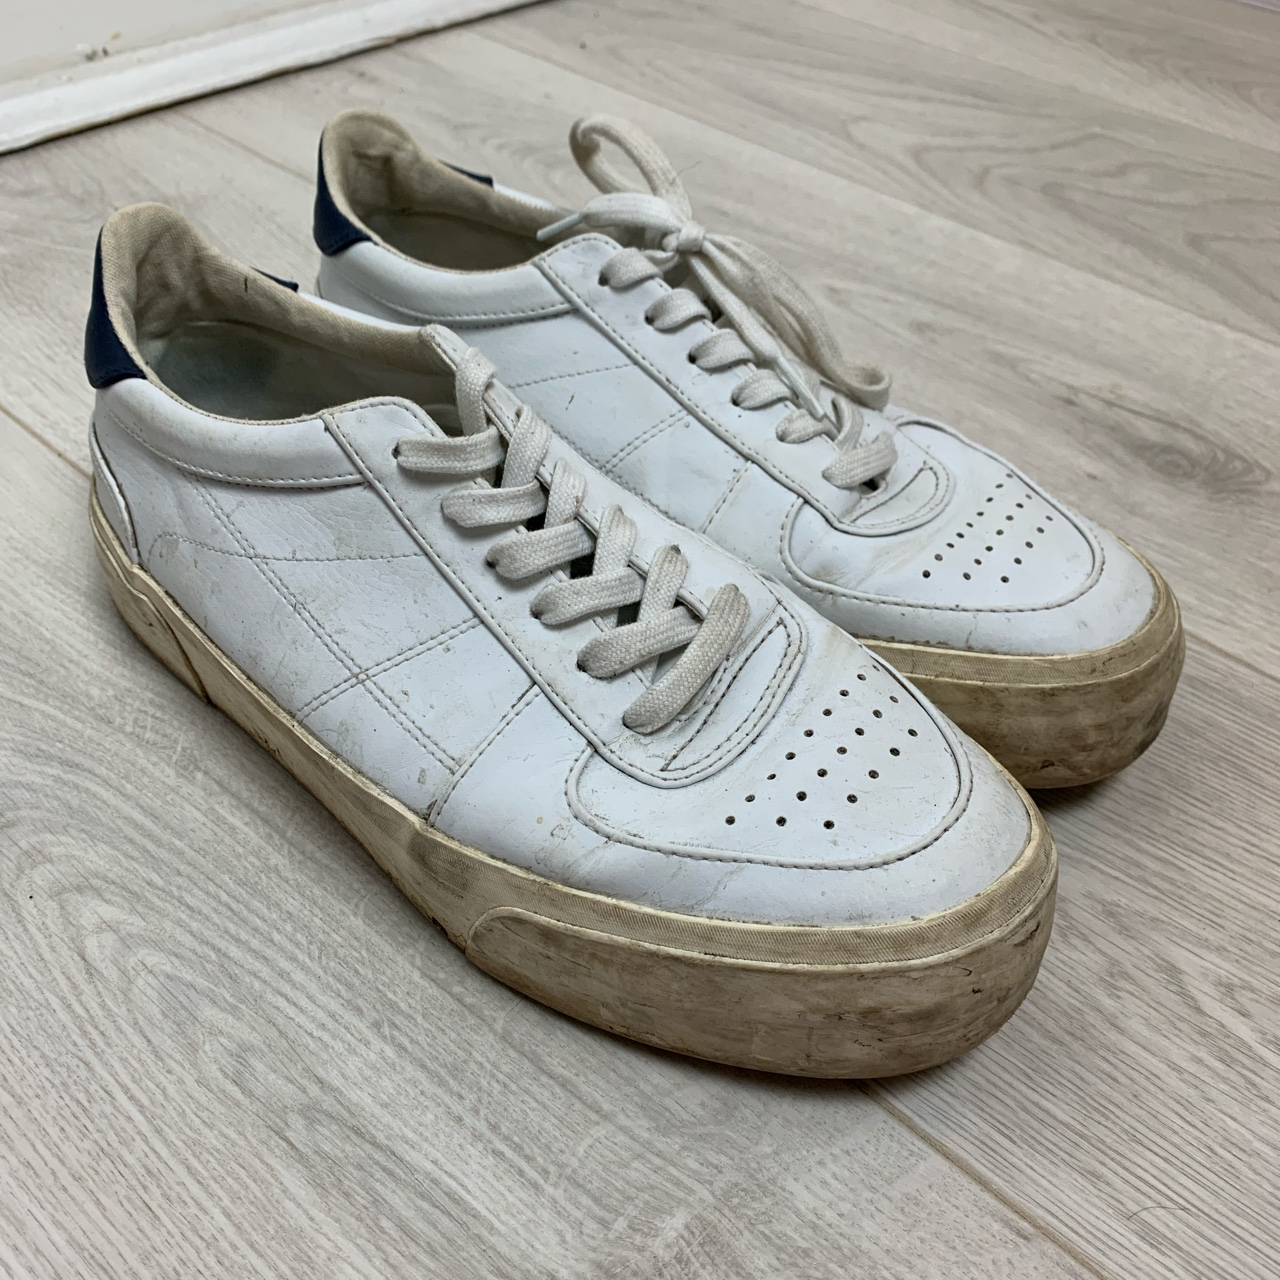 size 9 chunky trainers